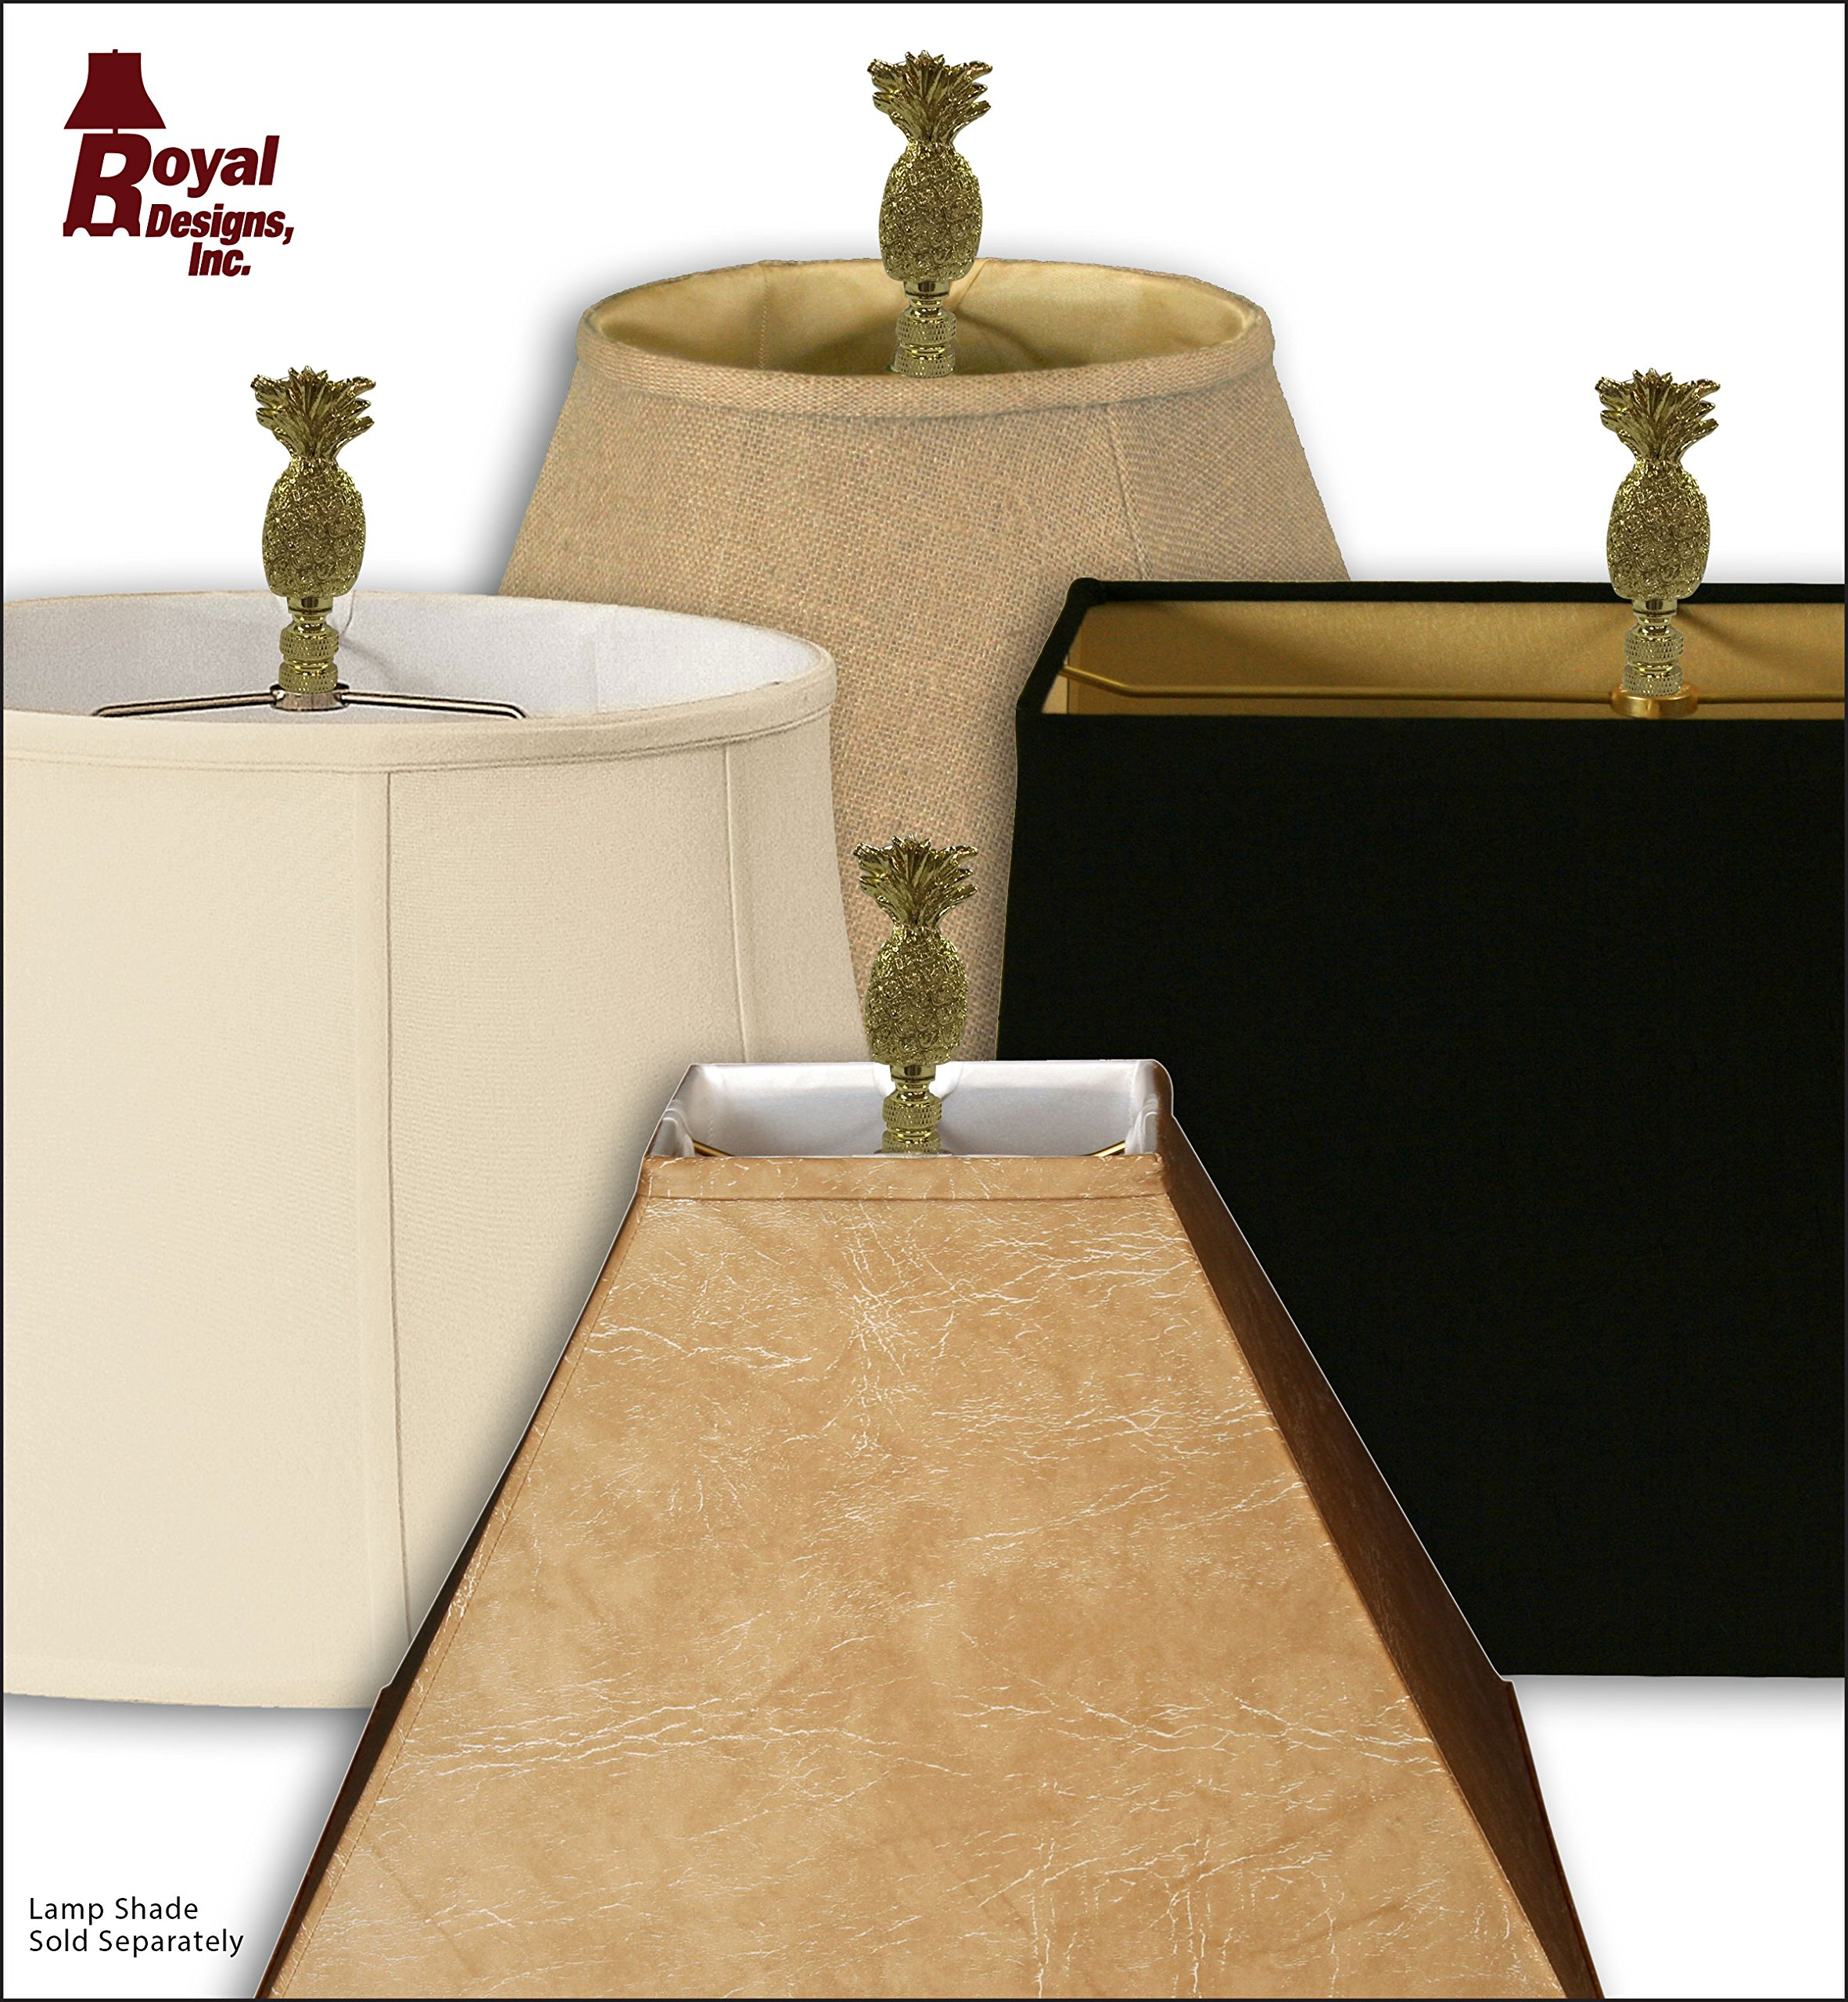 Royal Designs Trendy Resort Pineapple Lamp Finial for Lamp Shade- Polished Brass by Royal Designs, Inc (Image #4)